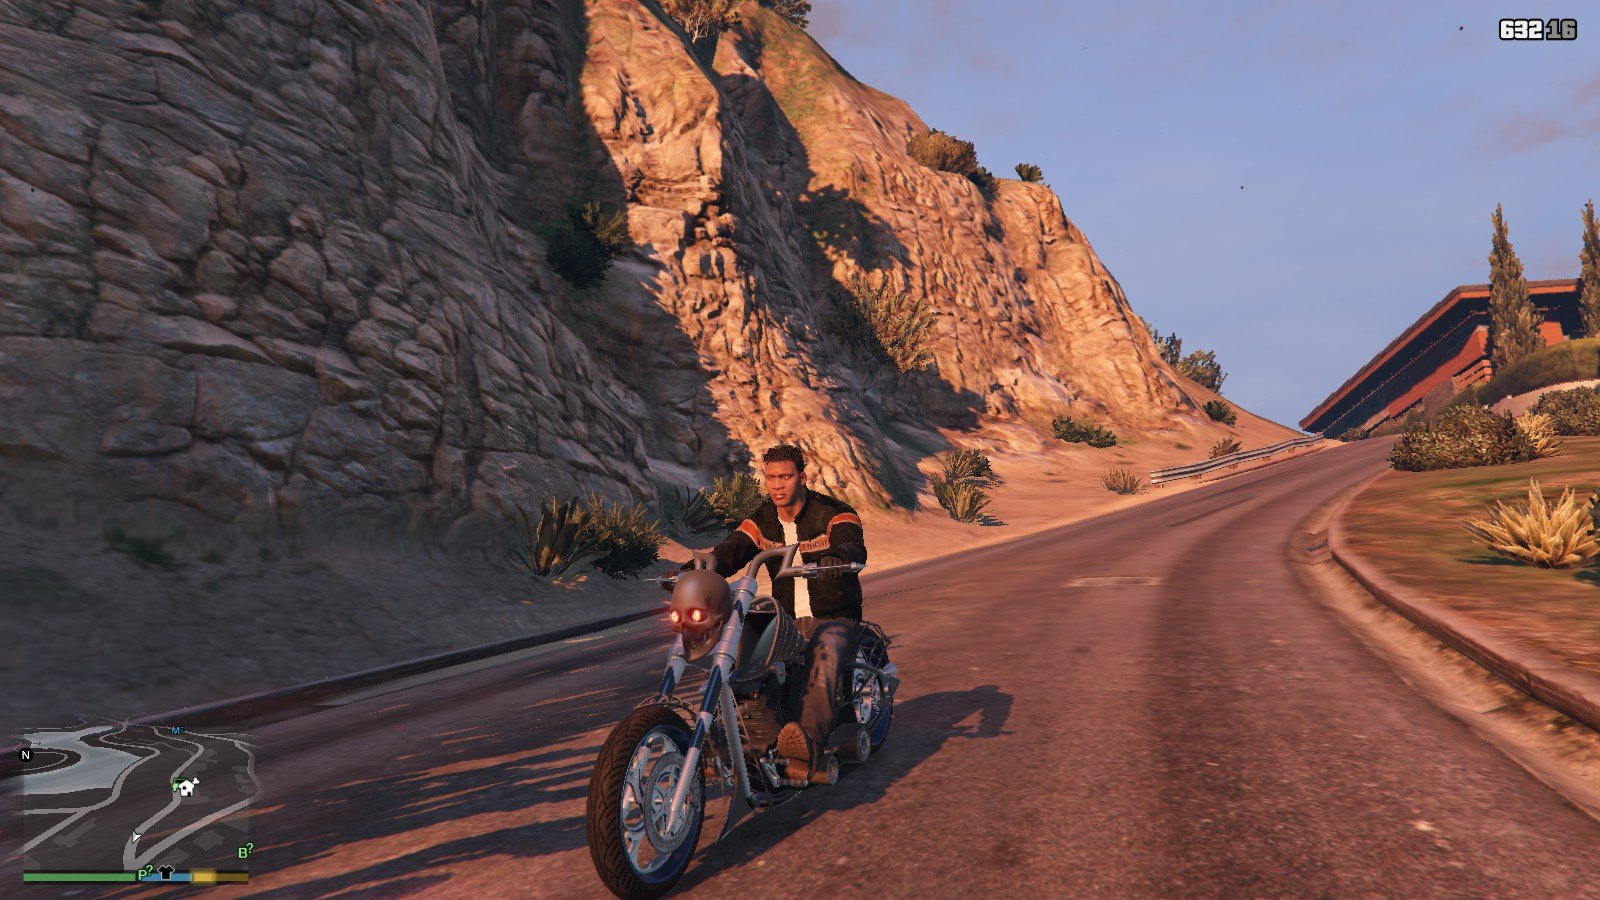 Harley Davidson Motocycle Leather Jacket GTA5 Mods (5)